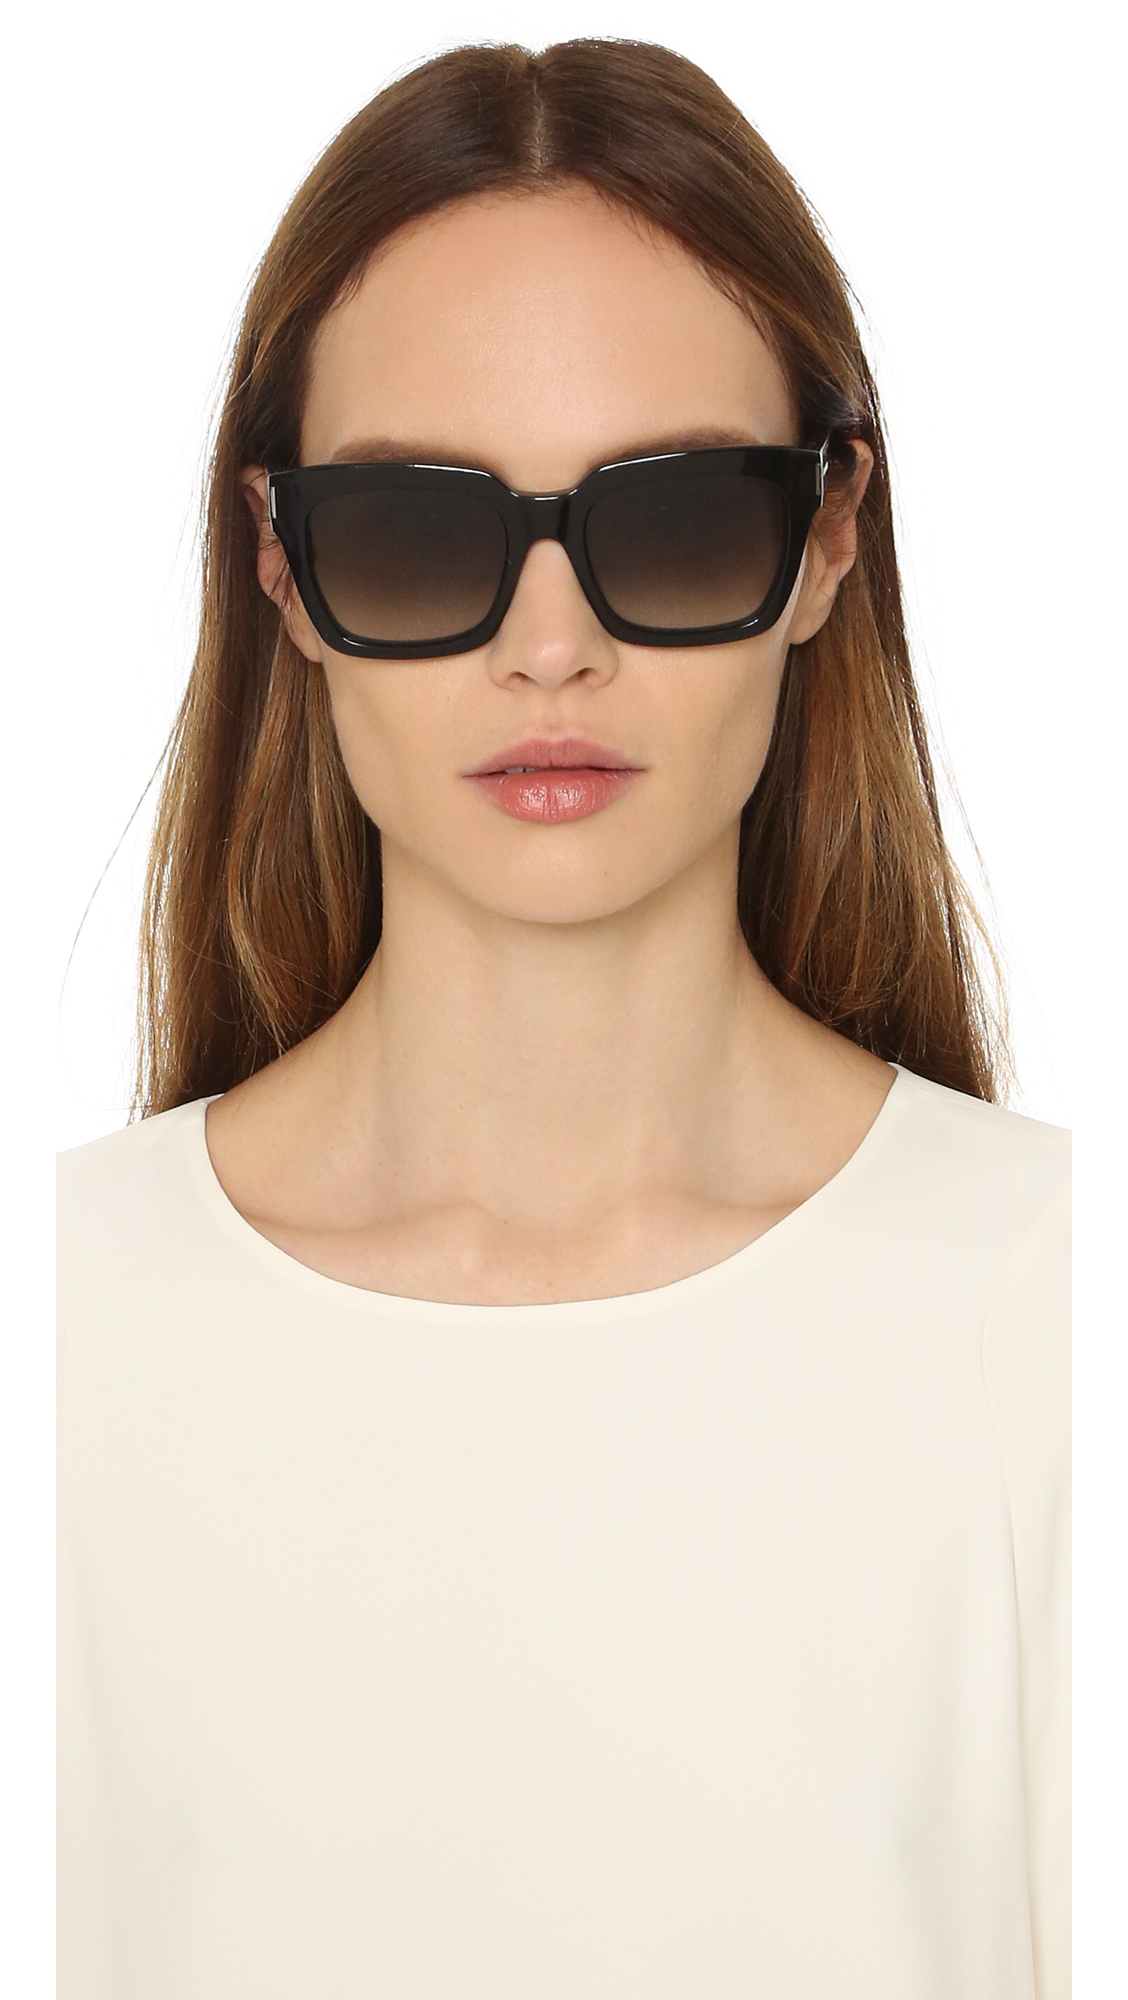 eecf7136d86176 Saint Laurent Bold 1 Sunglasses   SHOPBOP